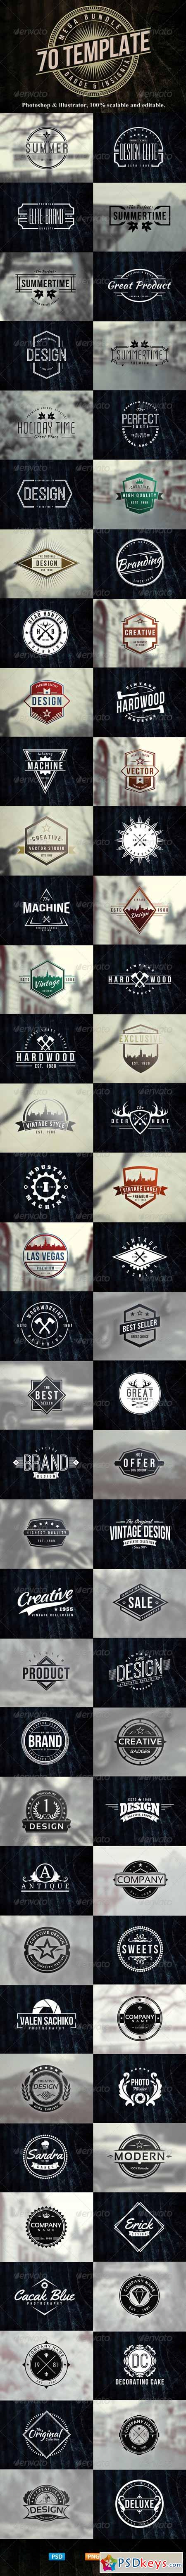 70 Logo Badge Insignia Templates Bundle 7909487